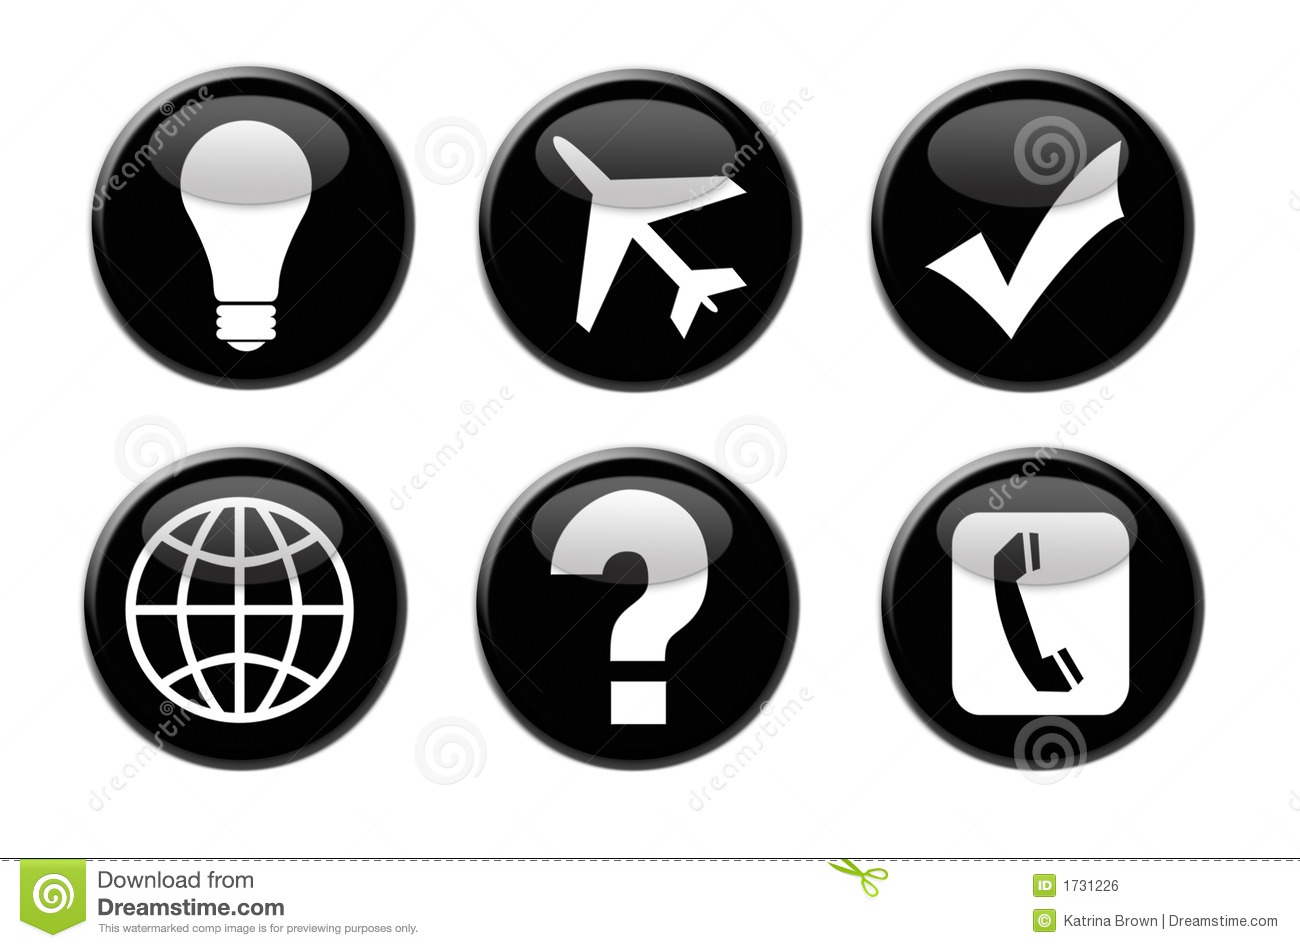 Royalty Free Business Travel Icon